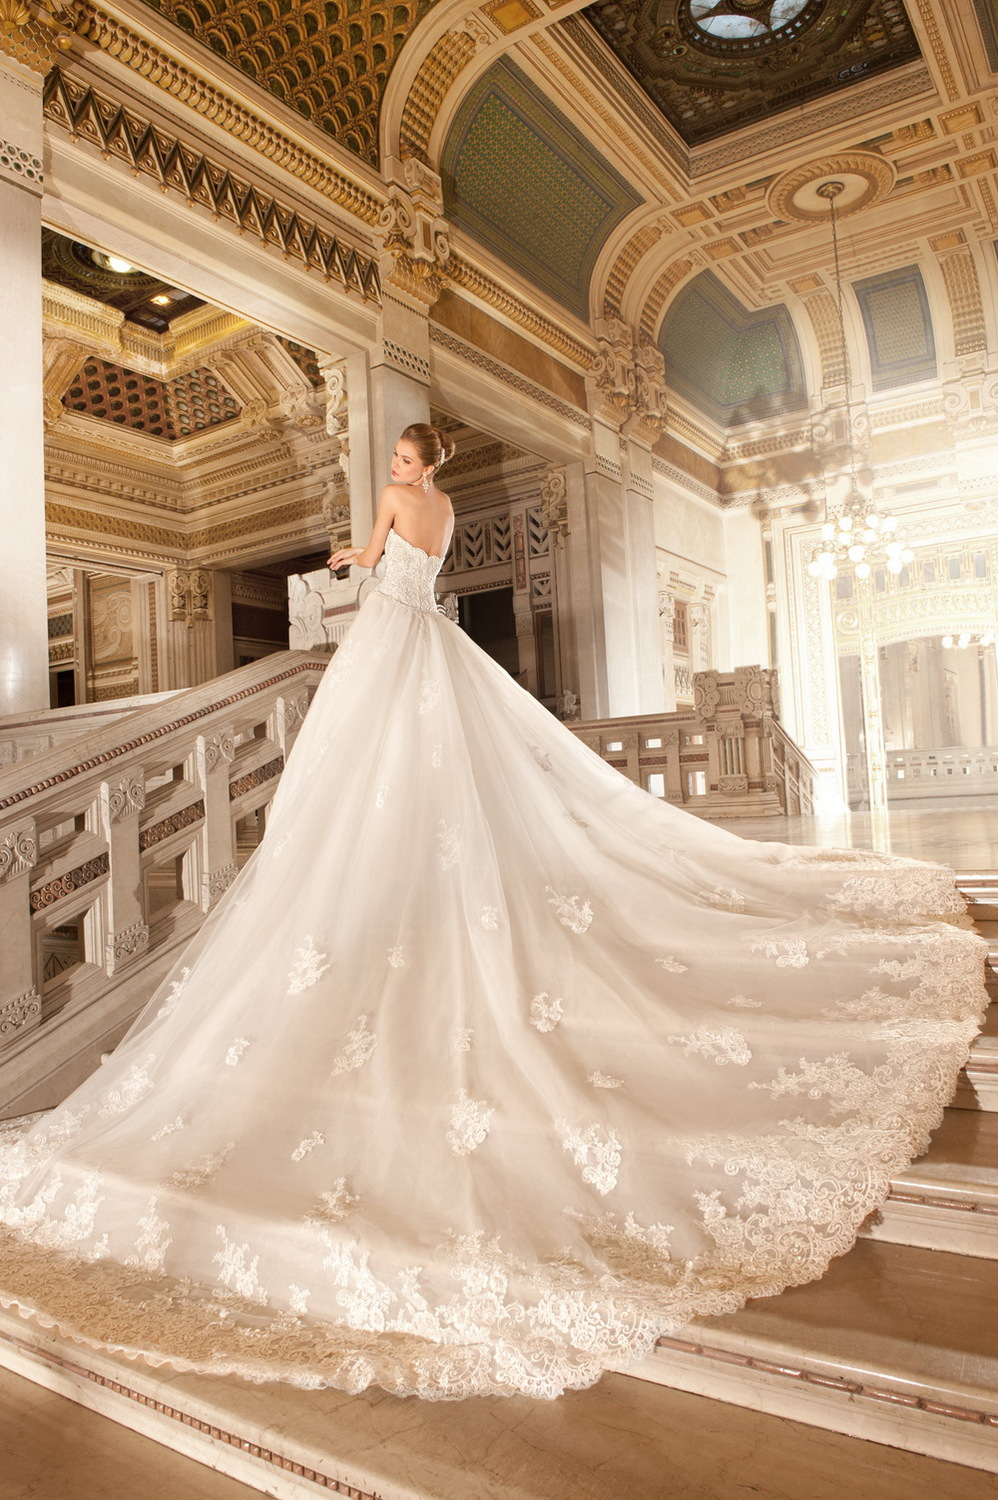 Wedding dresses: wedding dresses train lengths